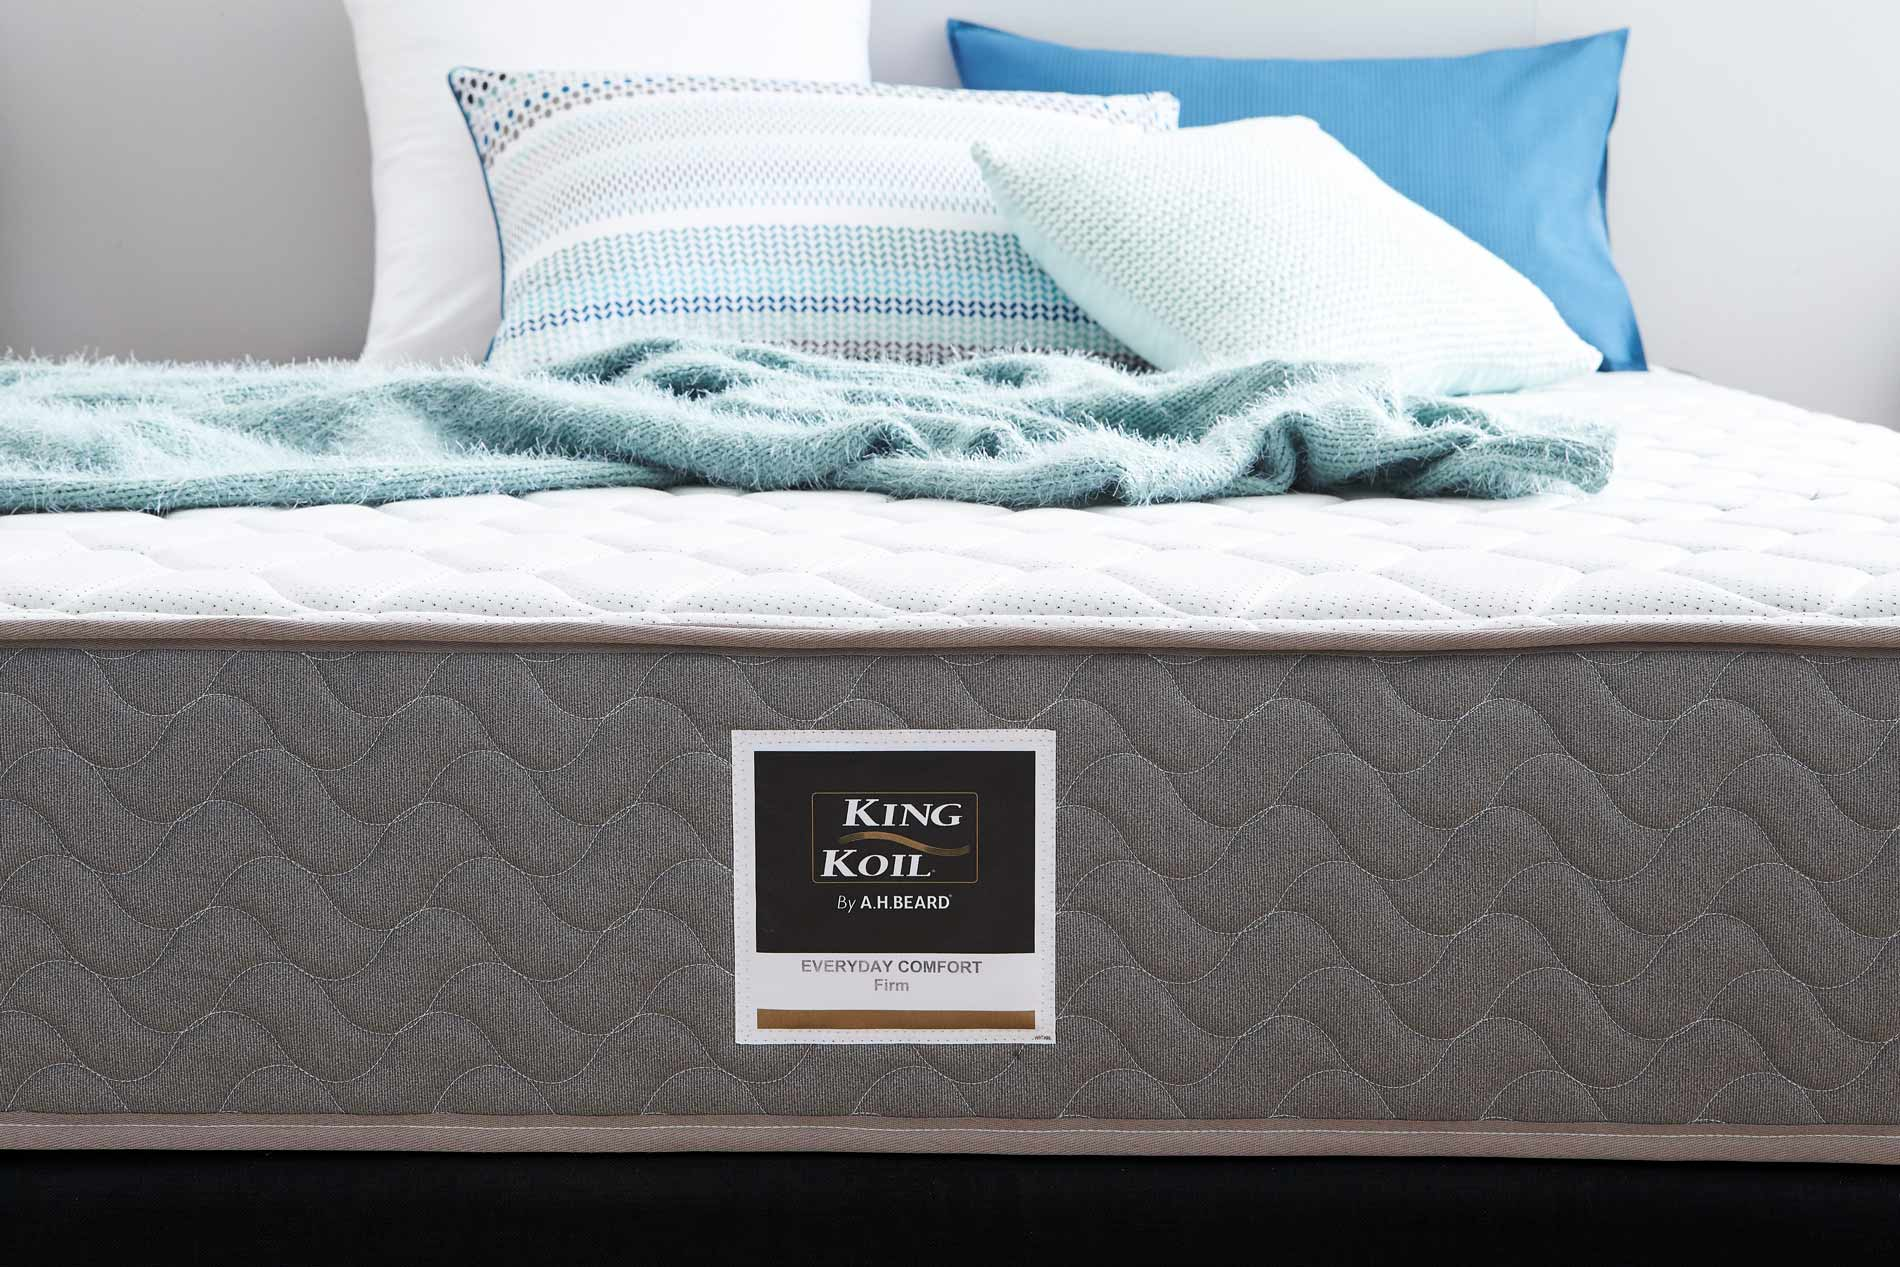 KING KOIL Everyday Comfort Mattress Firm Beds